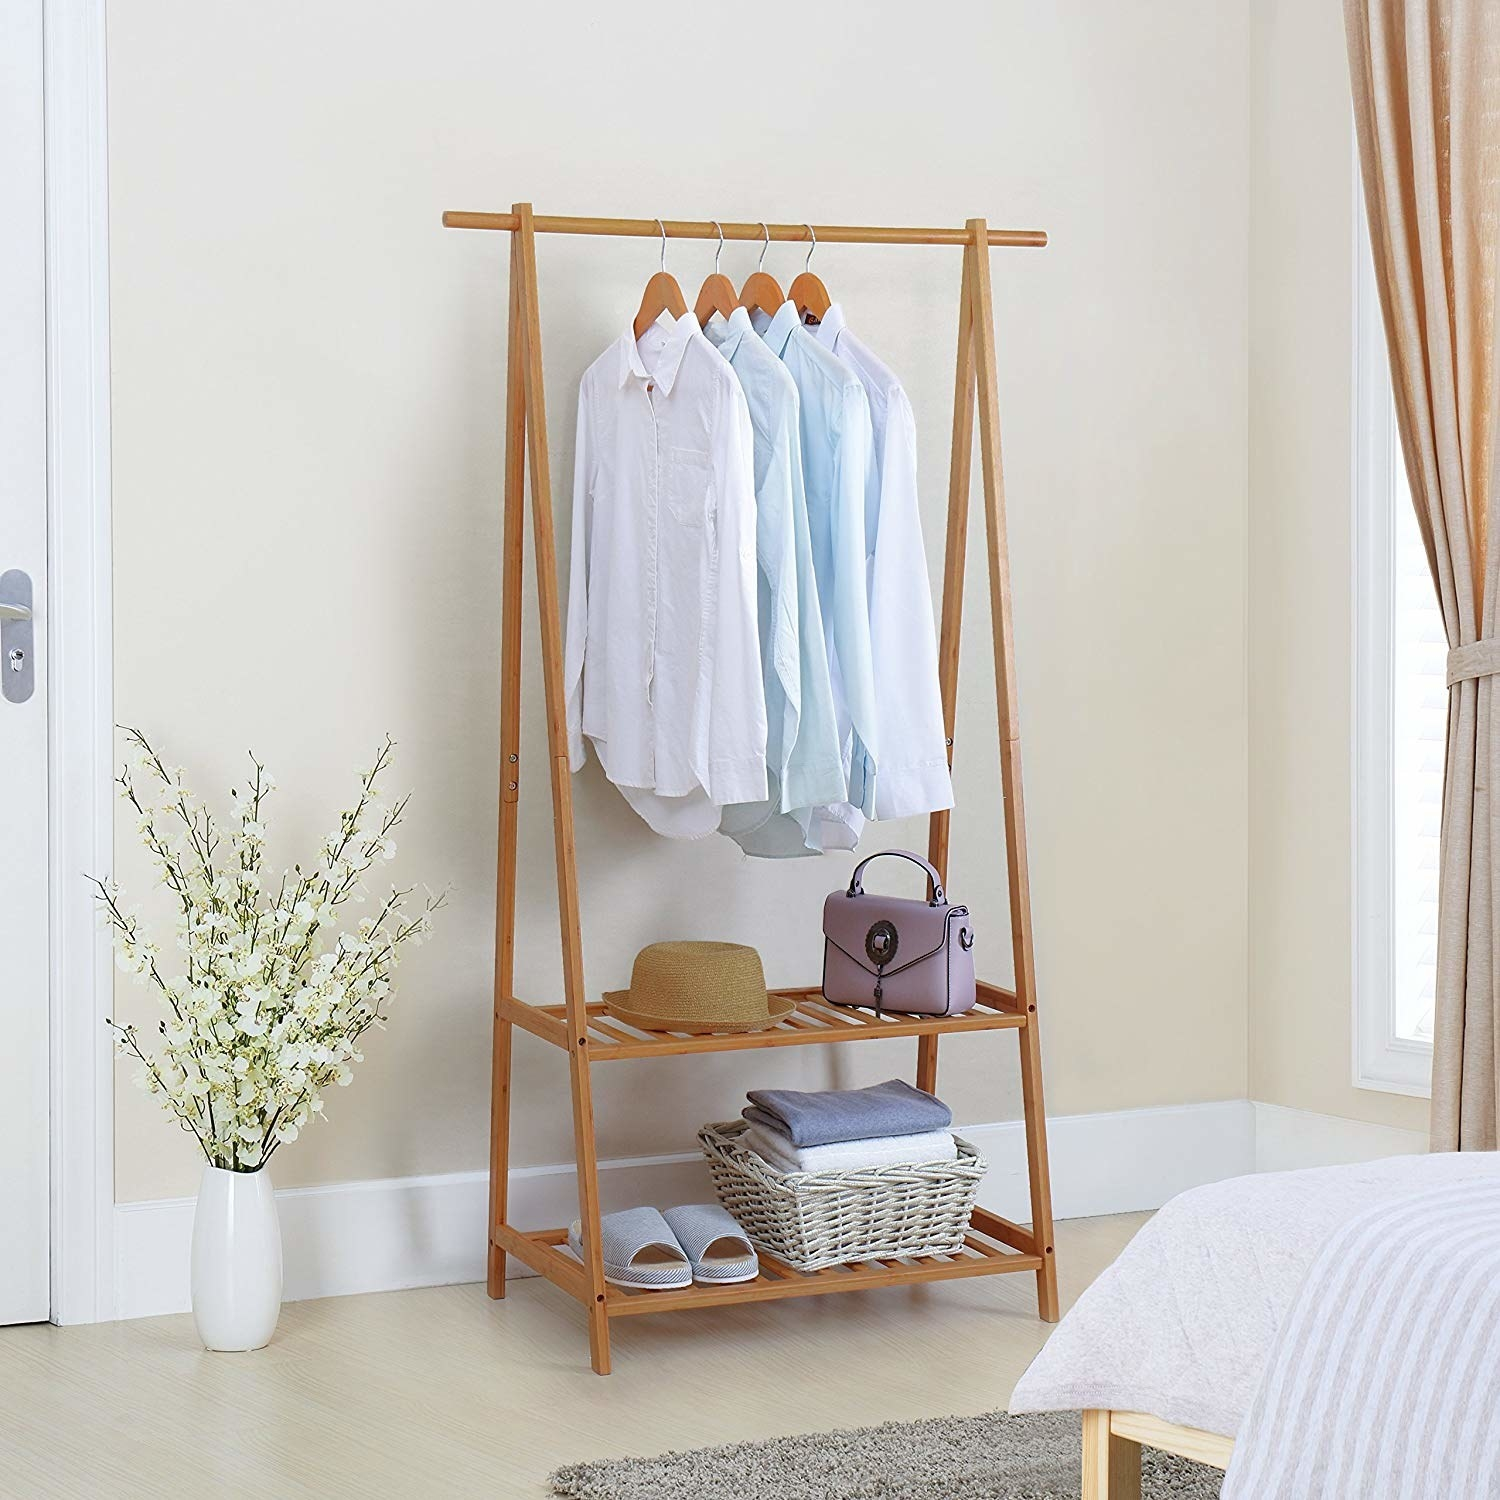 The tan garment rack with two slotted shelves on the bottom for accessories